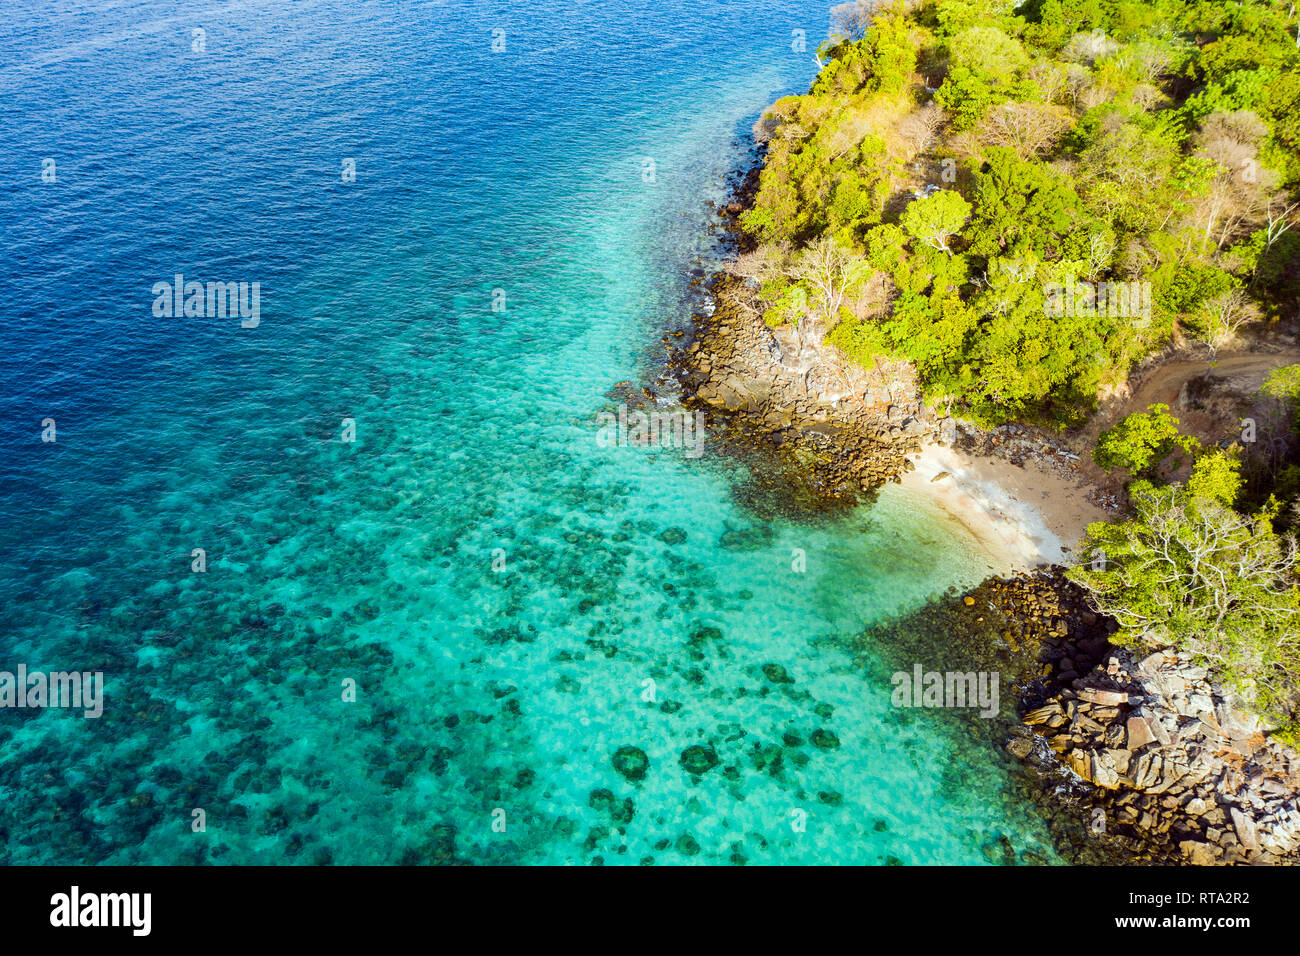 View from above, aerial view of a beautiful tropical beach